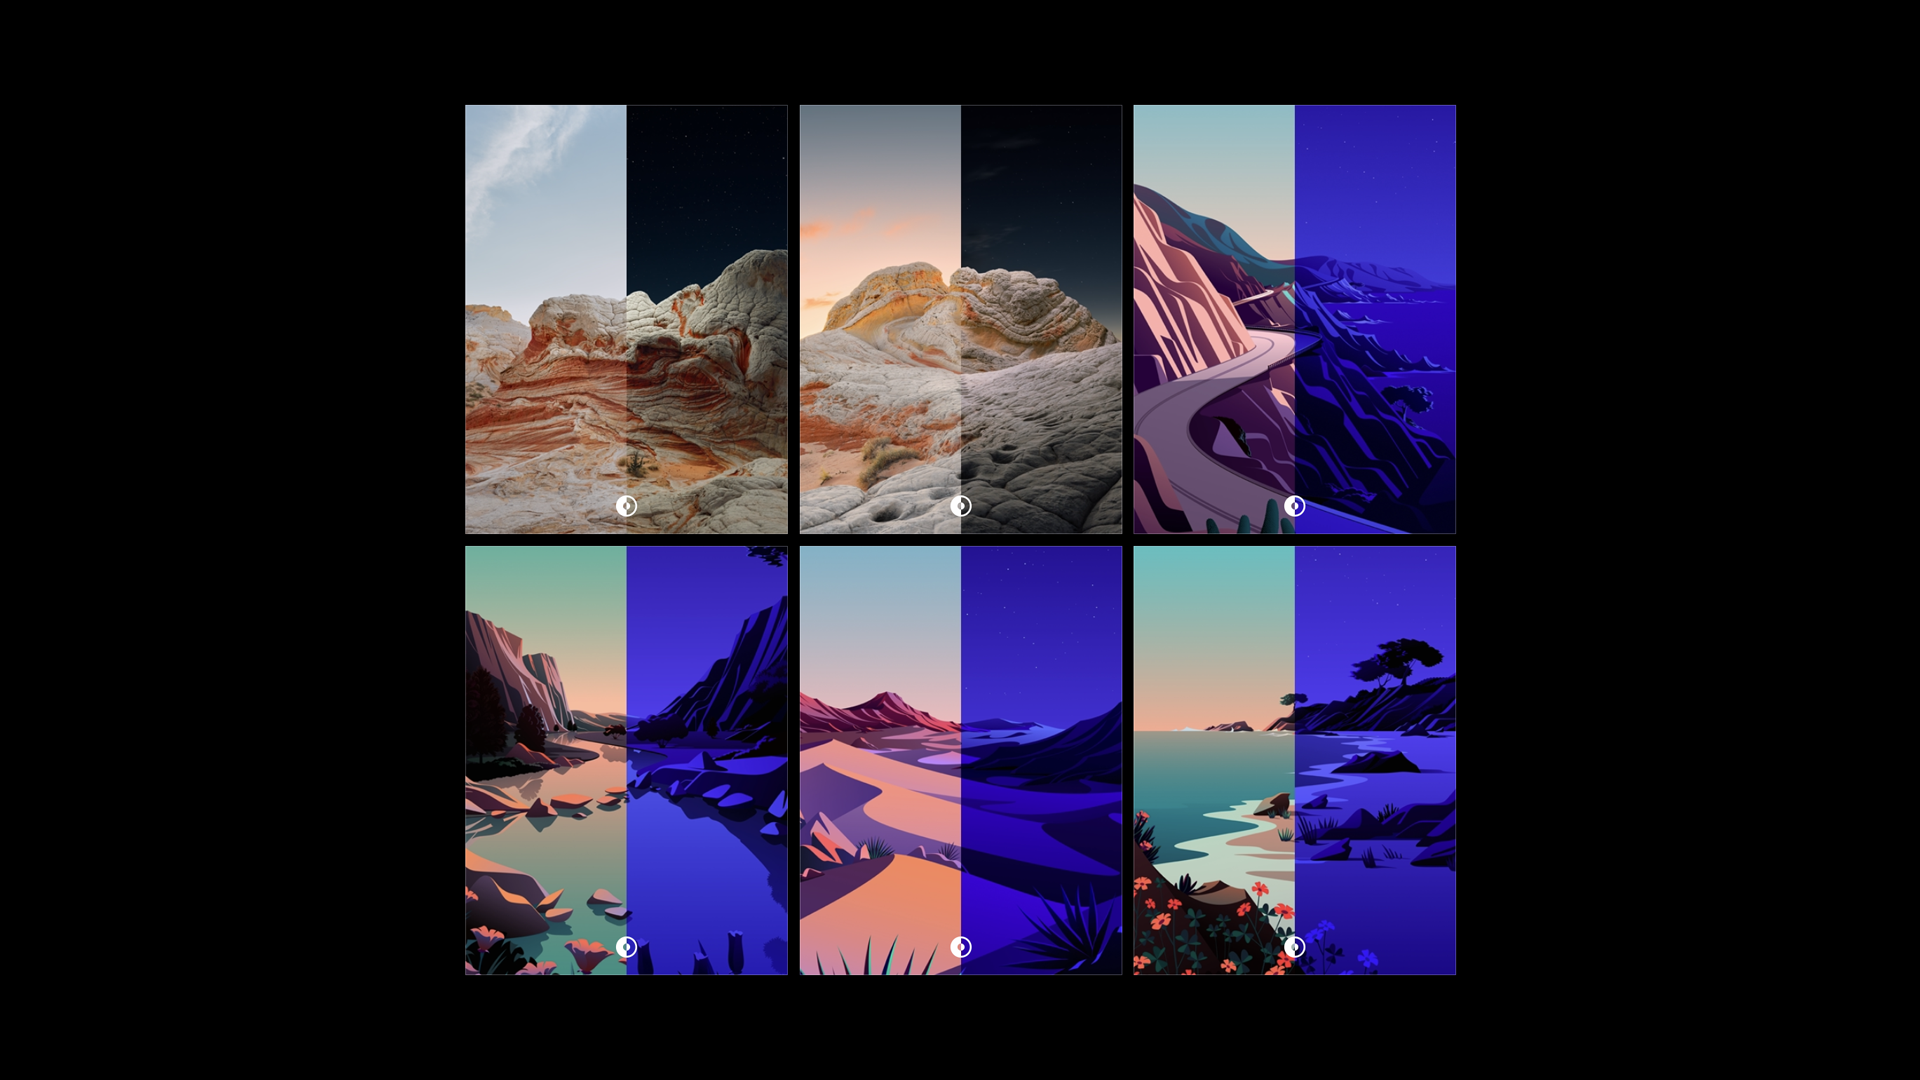 Download The New Ios 14 2 Wallpapers For Your Devices Right Here 9to5mac